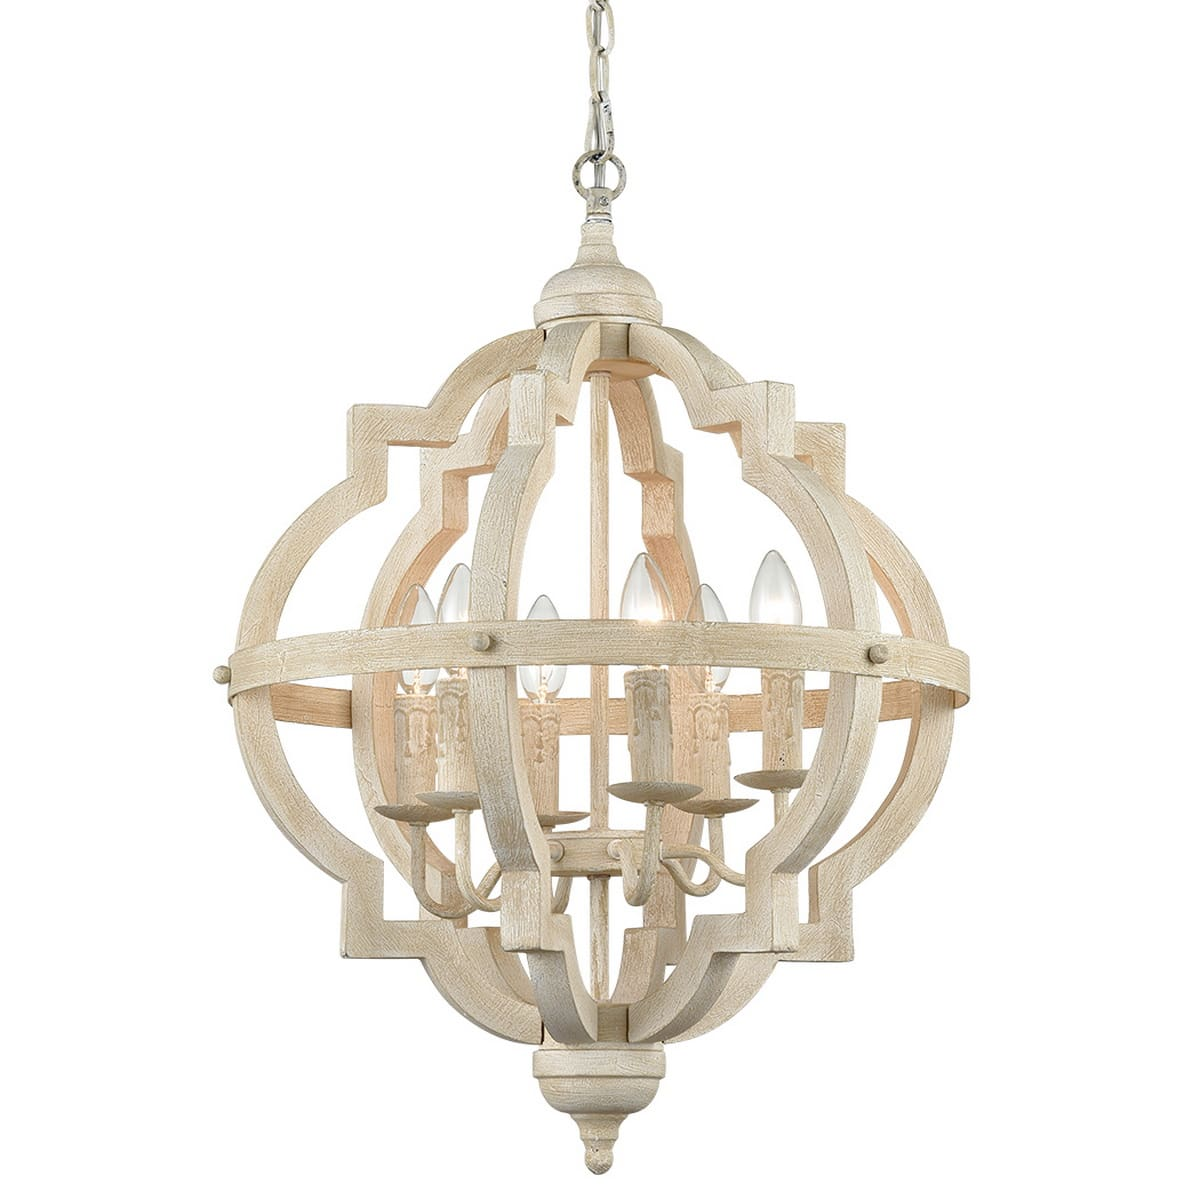 Distressed Off-white Wooden Chandelier Sphere 6 Light